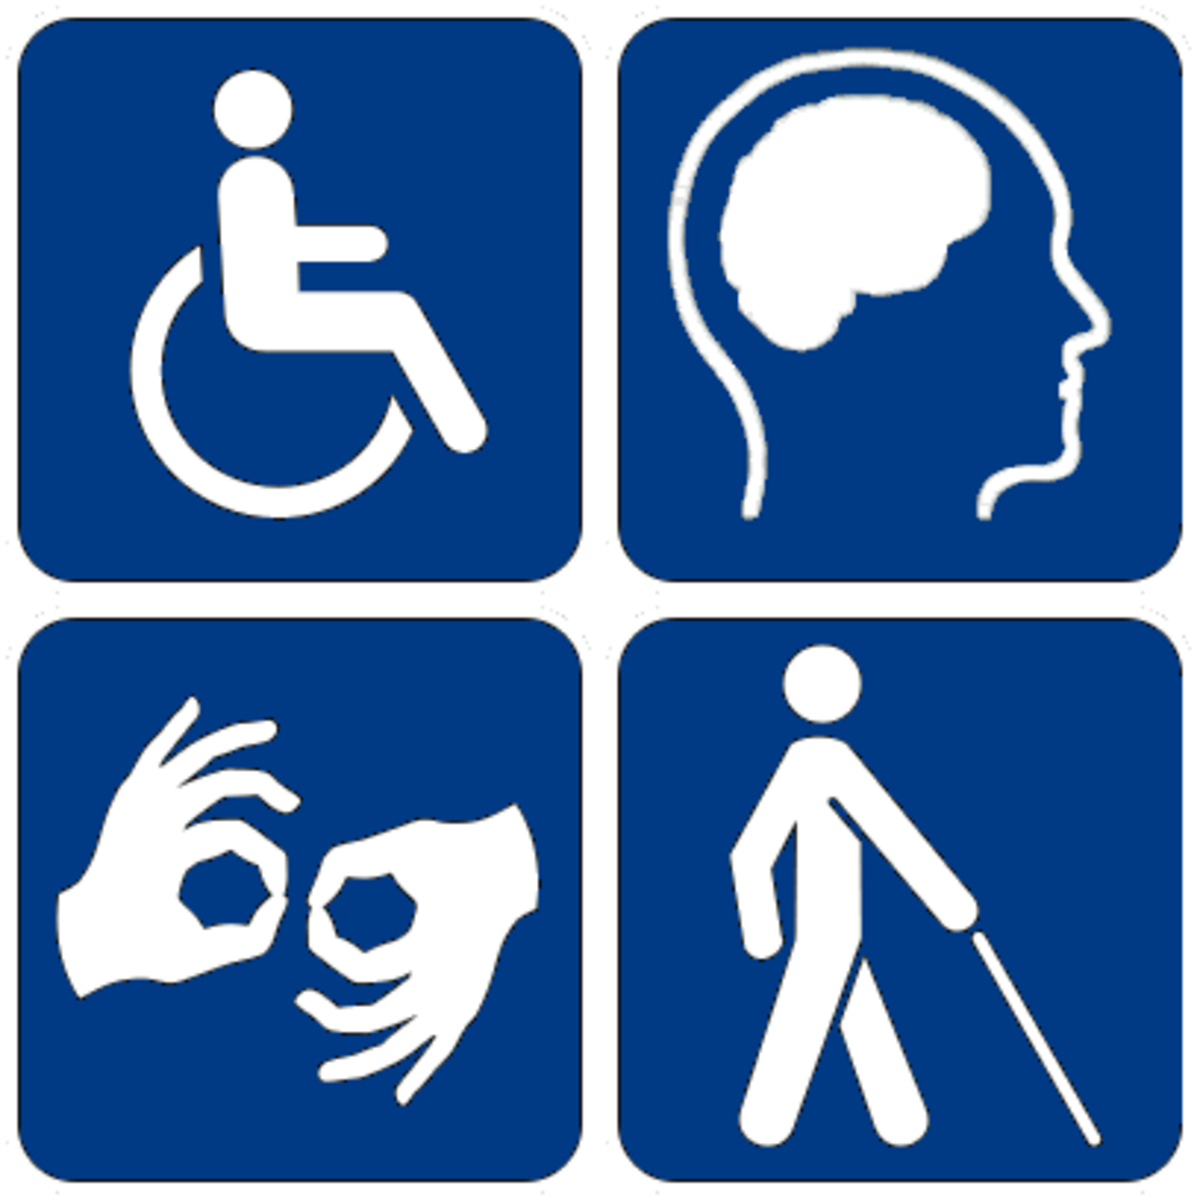 How to Get Disability in the US